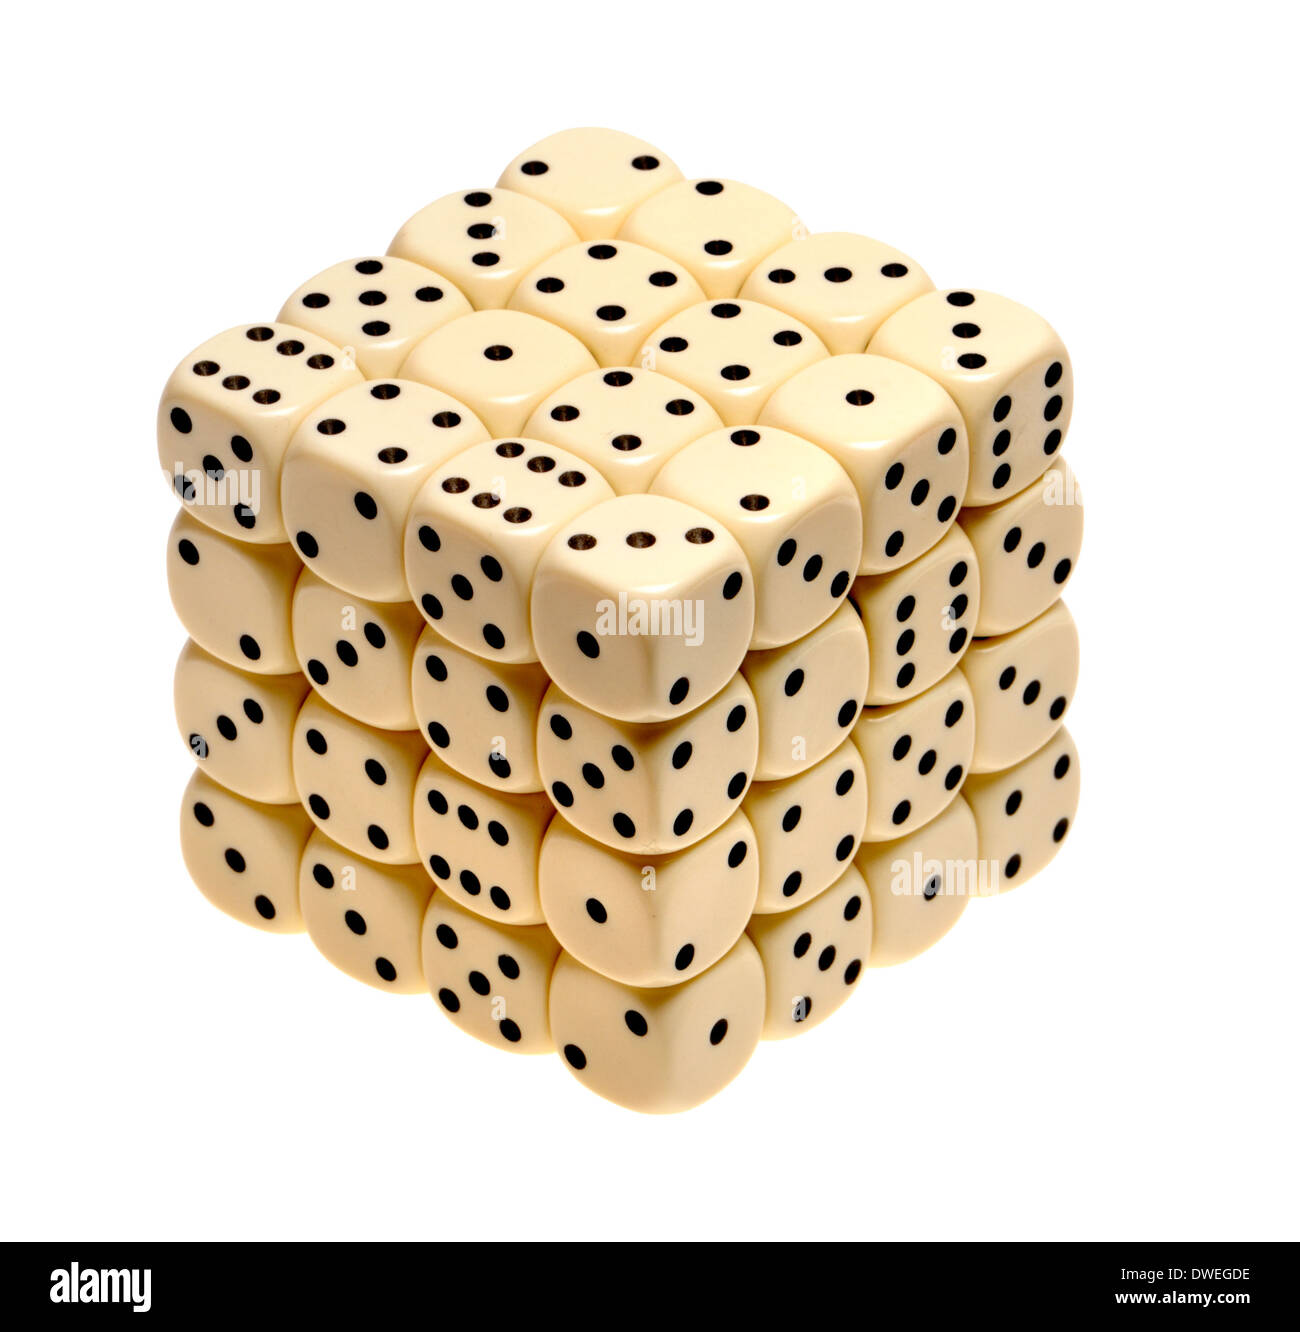 Cube of 64 dice - Stock Image